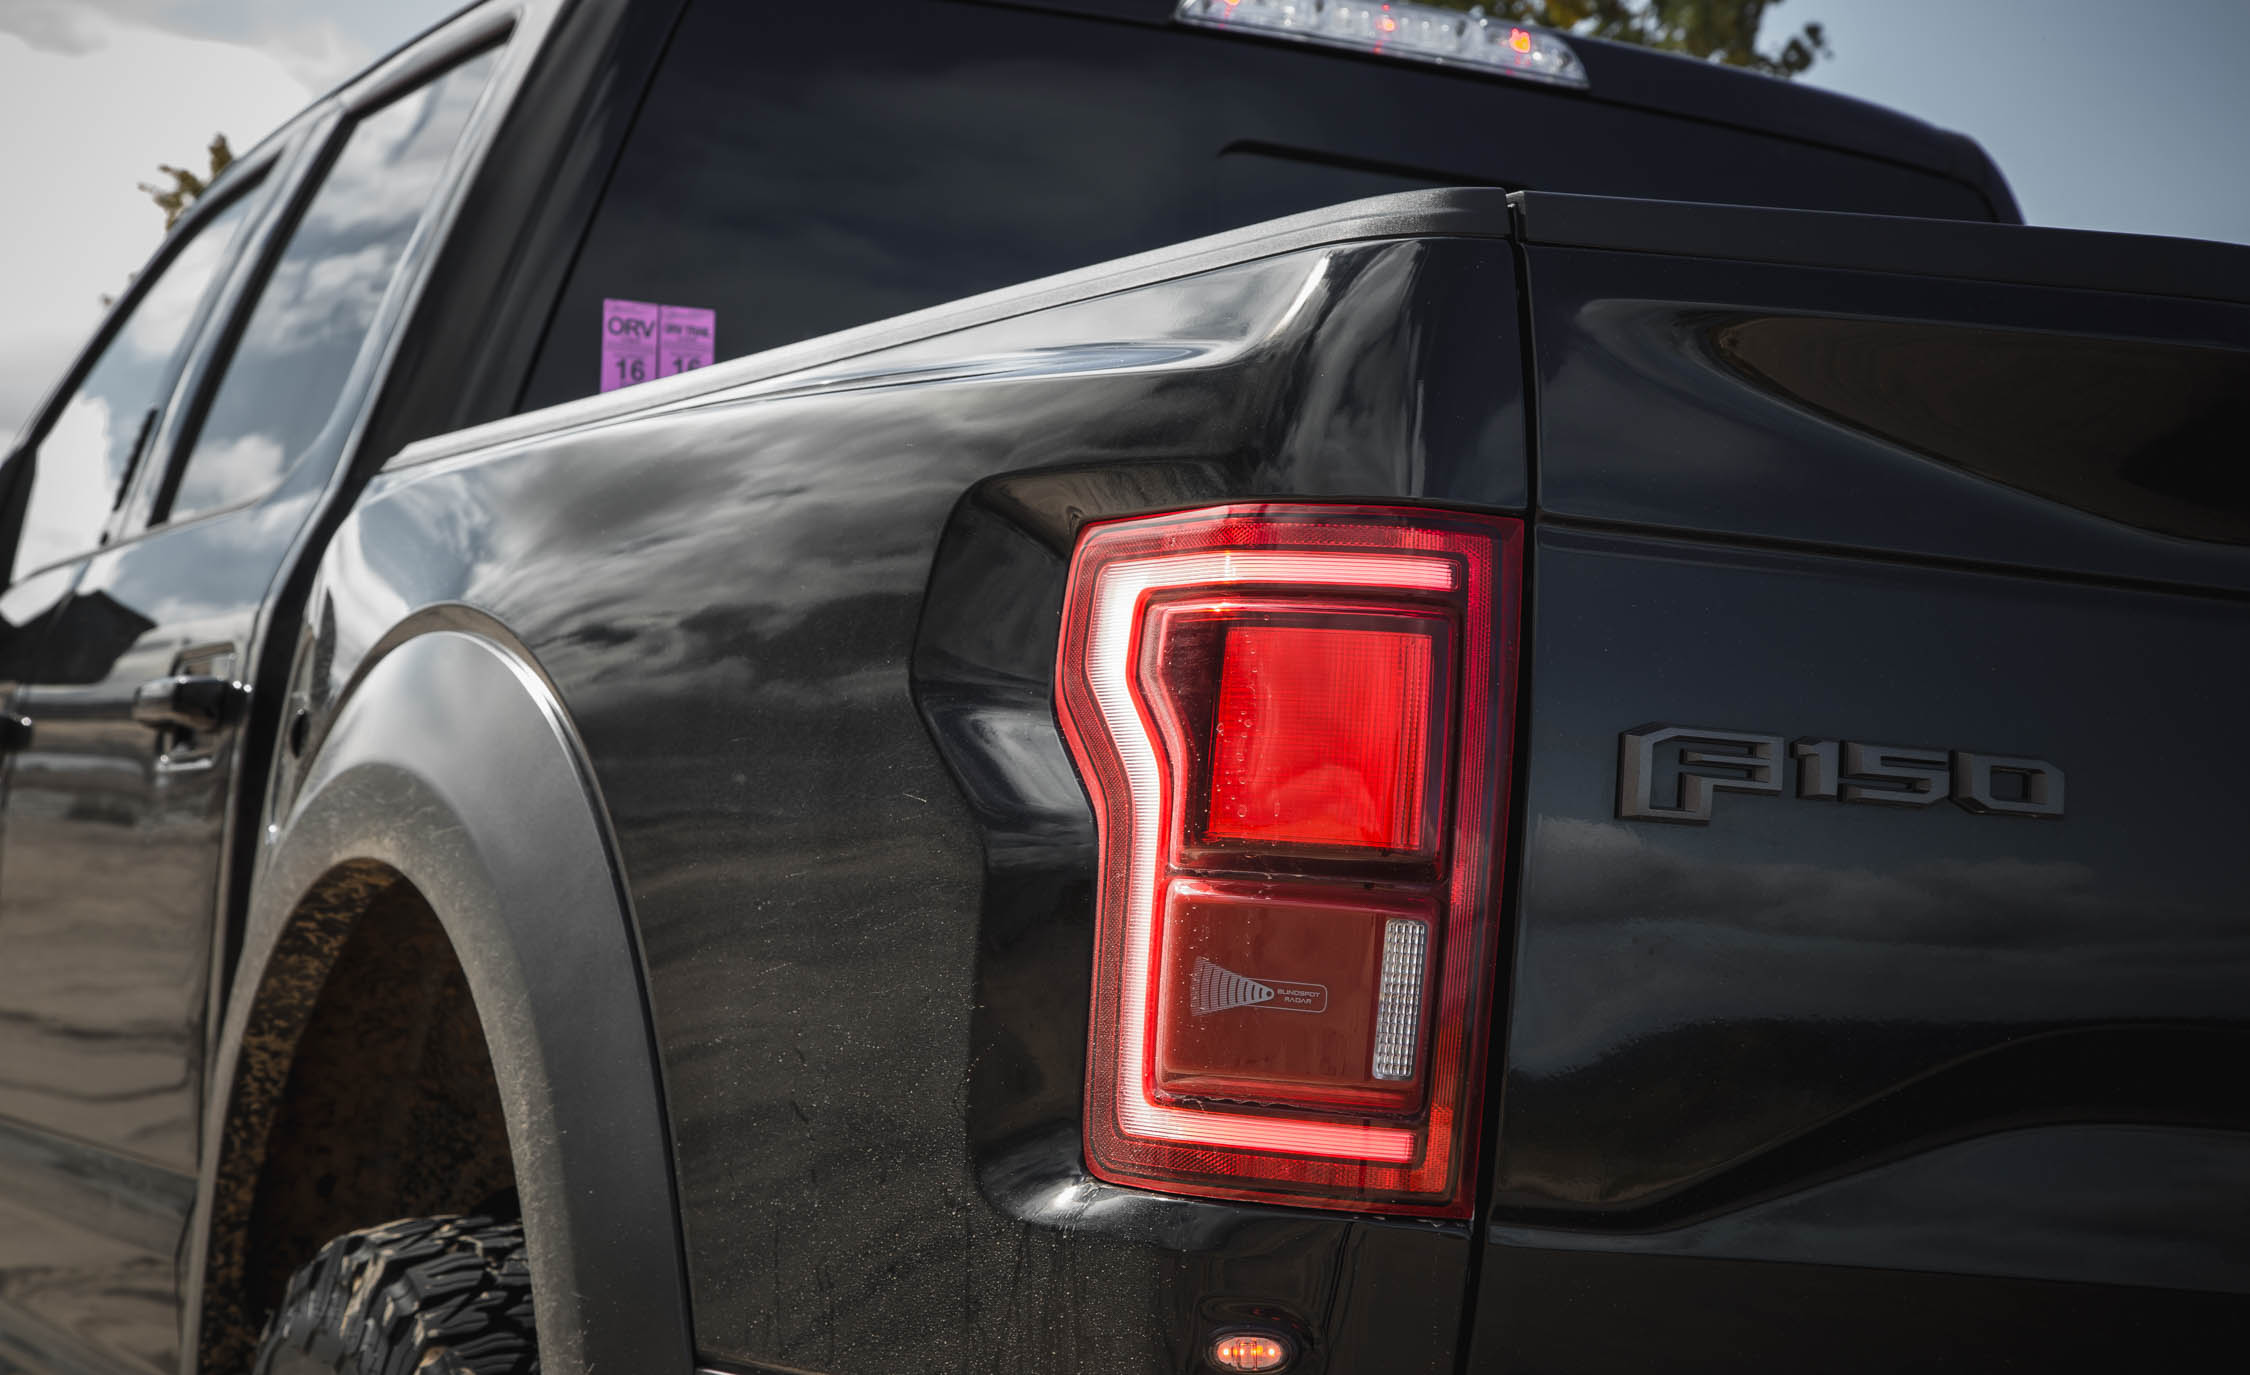 2017 Ford F 150 Raptor SuperCrew Exterior View Taillight (Photo 25 of 47)